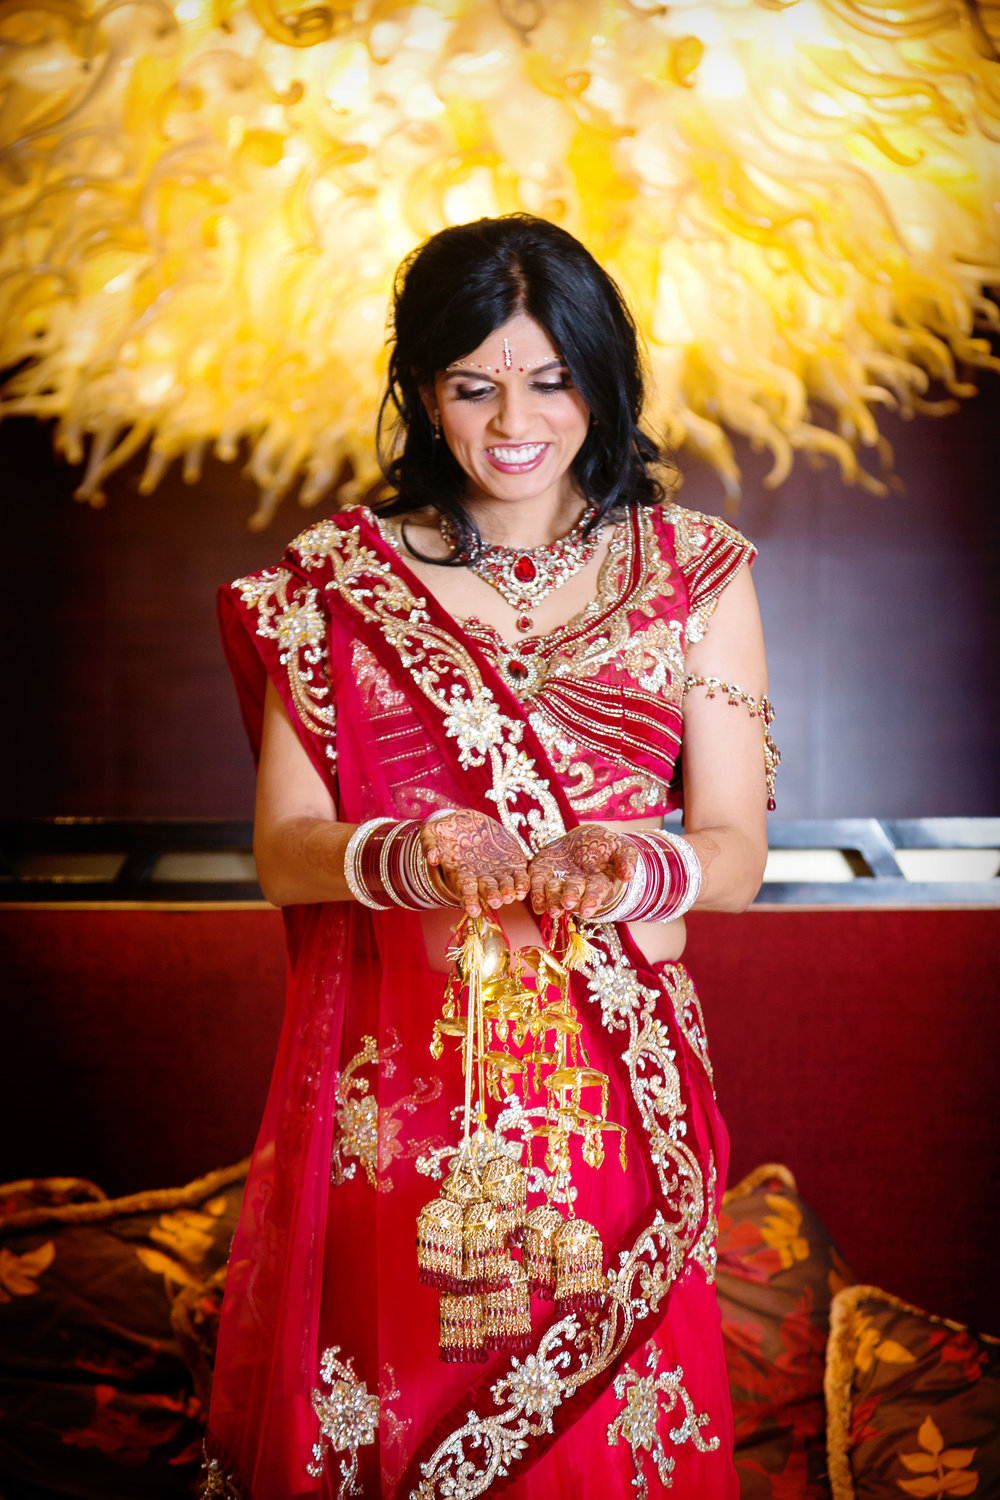 Indian-Wedding-Ritz-Carlton-Denver-020.jpg